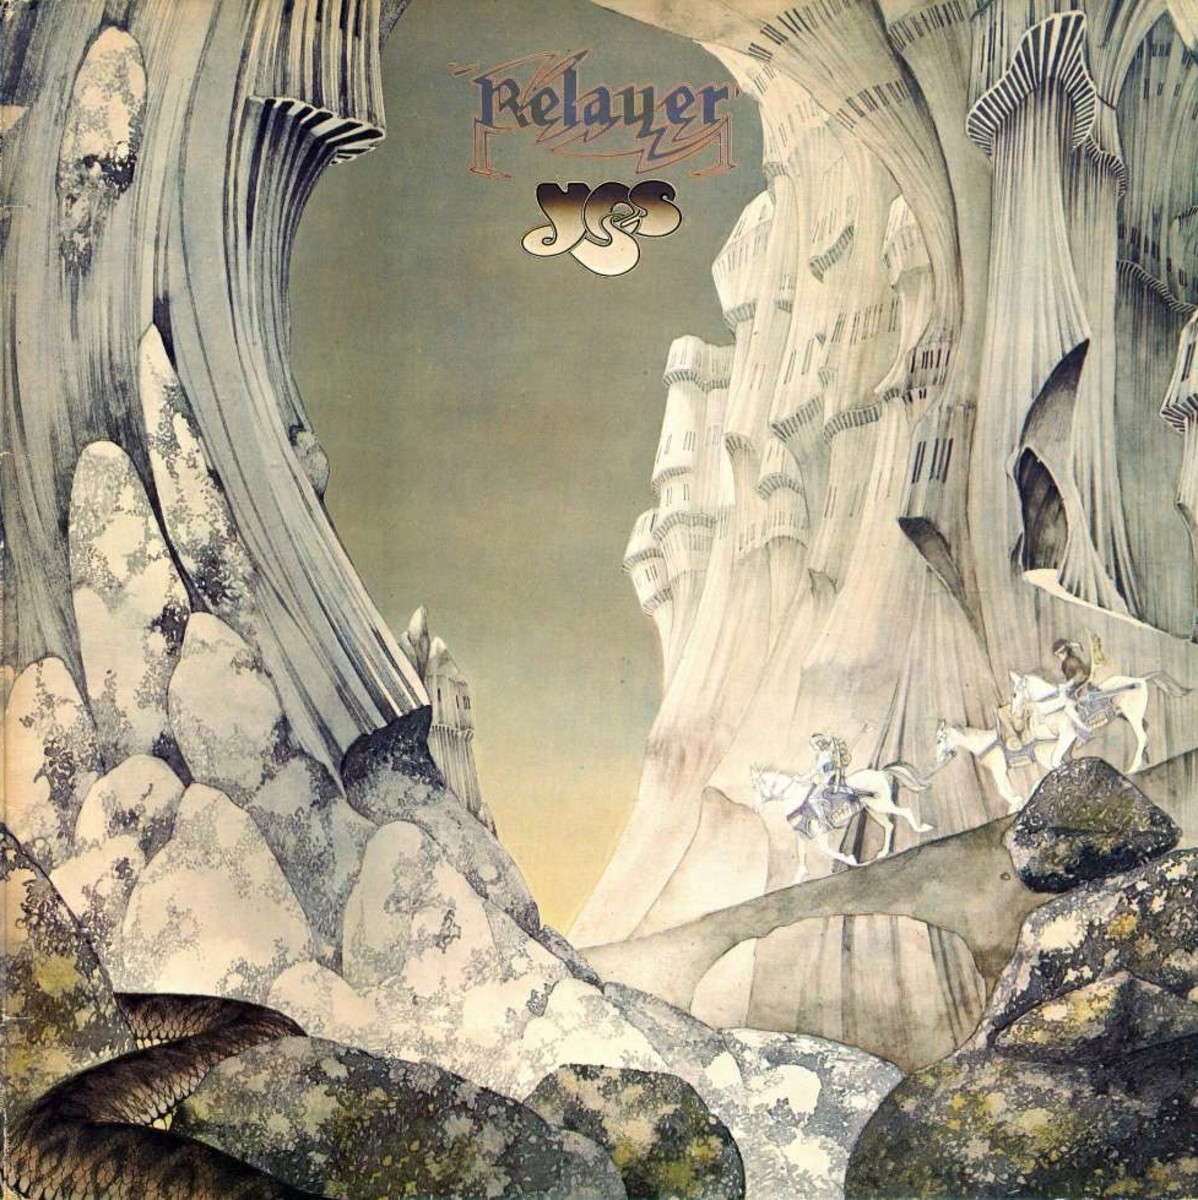 "Yes ""Relayer"" Atlantic Records SD 18122 12"" LP Vinyl Record, US Pressing (1974) Gatefold Album Cover Art & Design by Roger Dean"